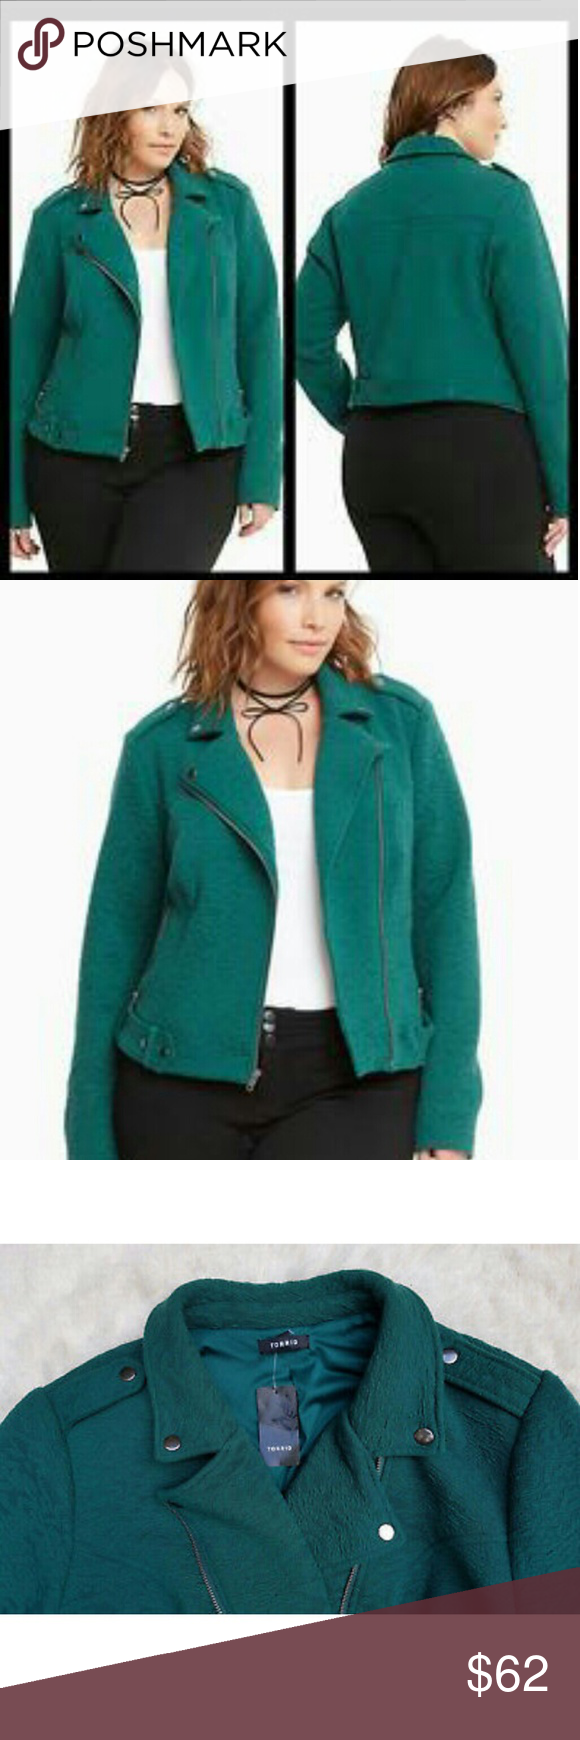 1d74165df56 NWT Torrid Jacket New with tags Torrid knit material moto jacket size 4.  Material is very comfy and stretchy. Color is rainforest green.